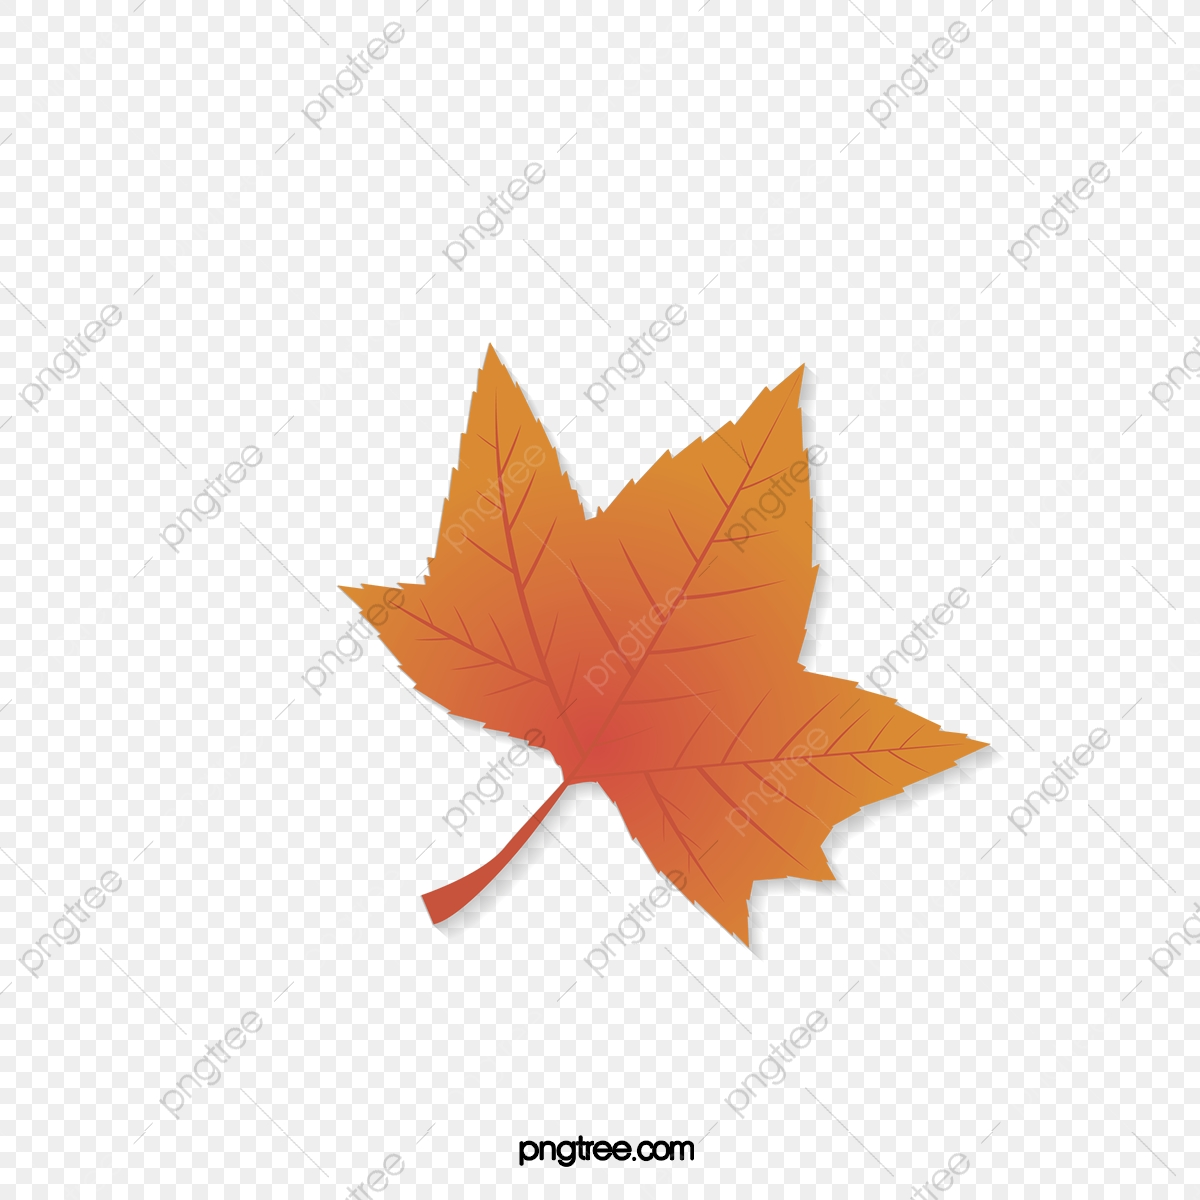 Red Maple Leaves Vector Material Free Dig Red Vector Red Material Maple Png And Vector With Transparent Background For Free Download